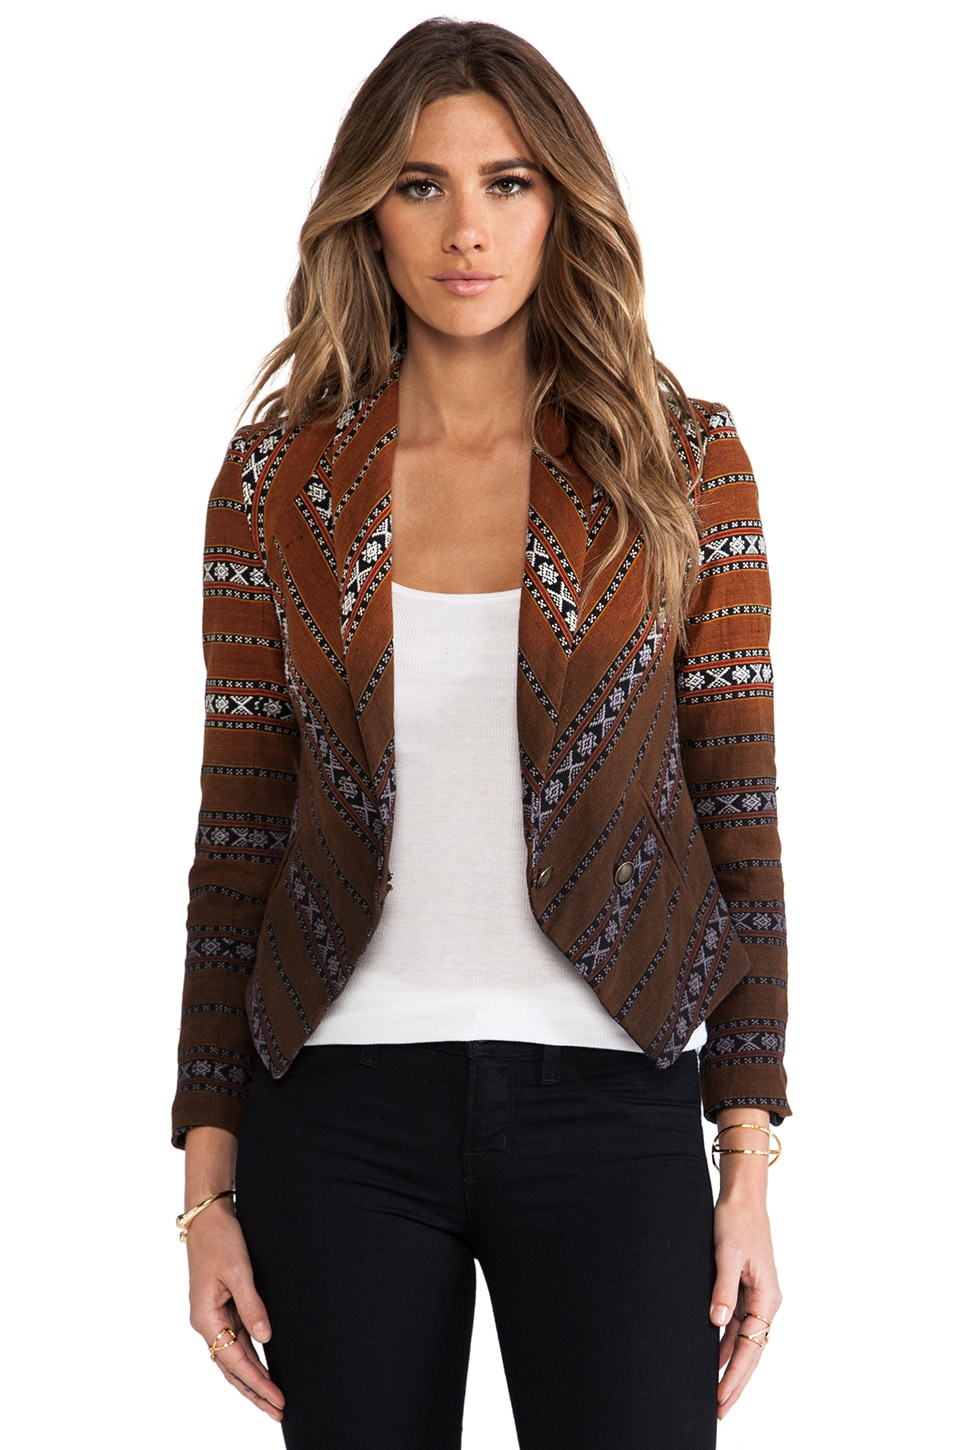 Twelfth Street By Cynthia Vincent Breaux Dip Dye Ikat Blazer in Dip Dye Orange